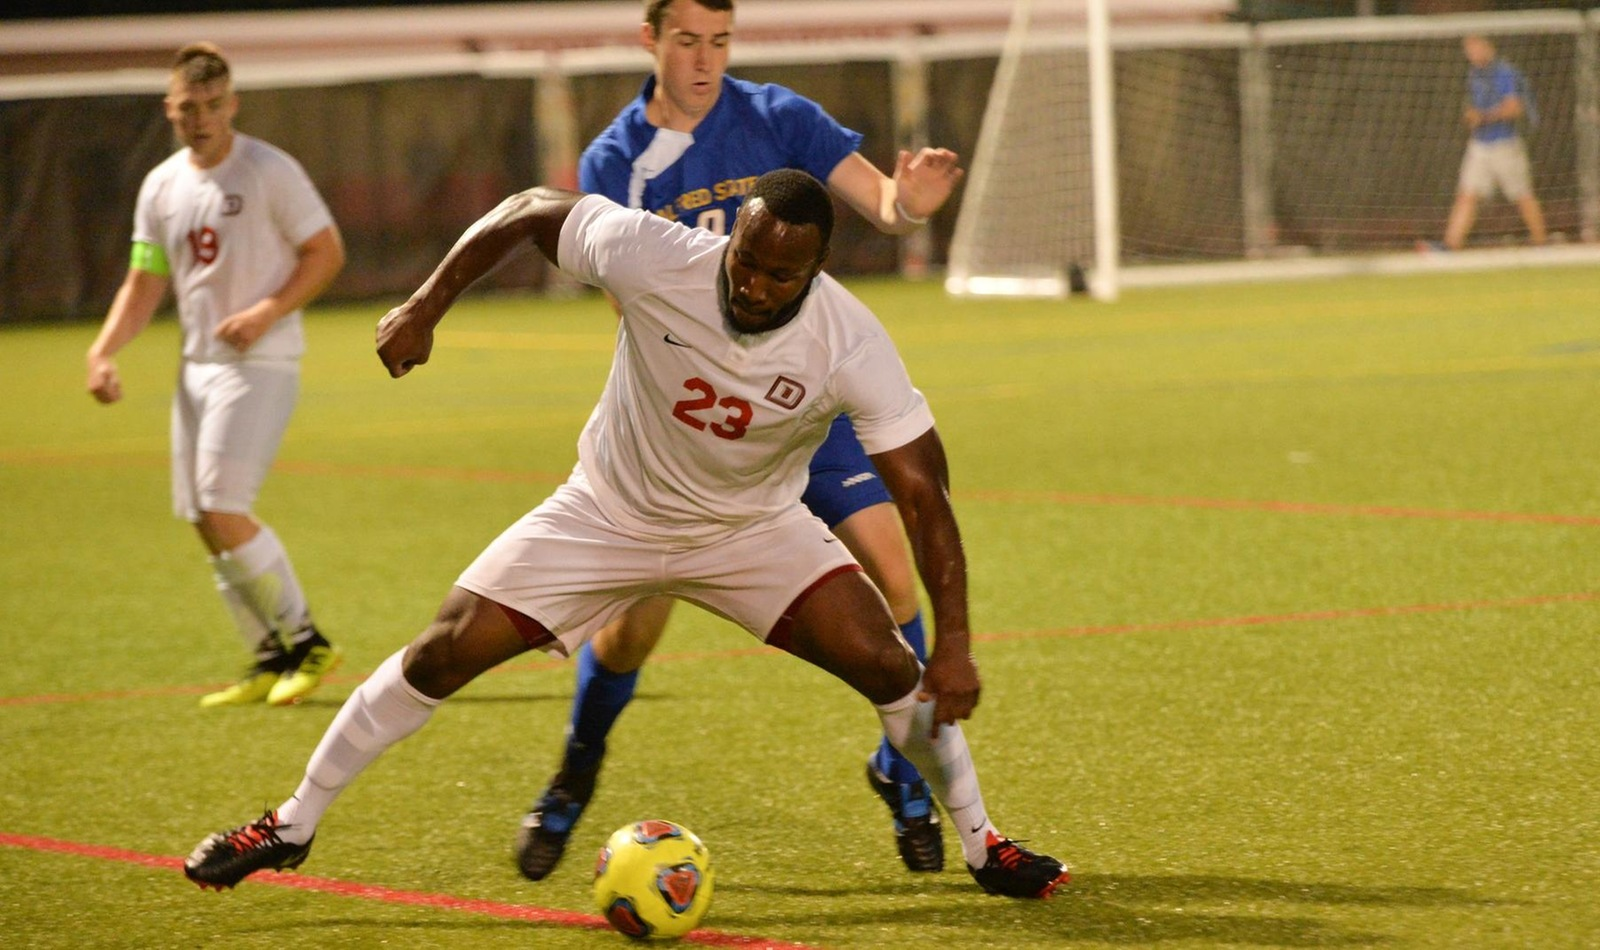 Spartans Fall to Mavericks in Men's Soccer